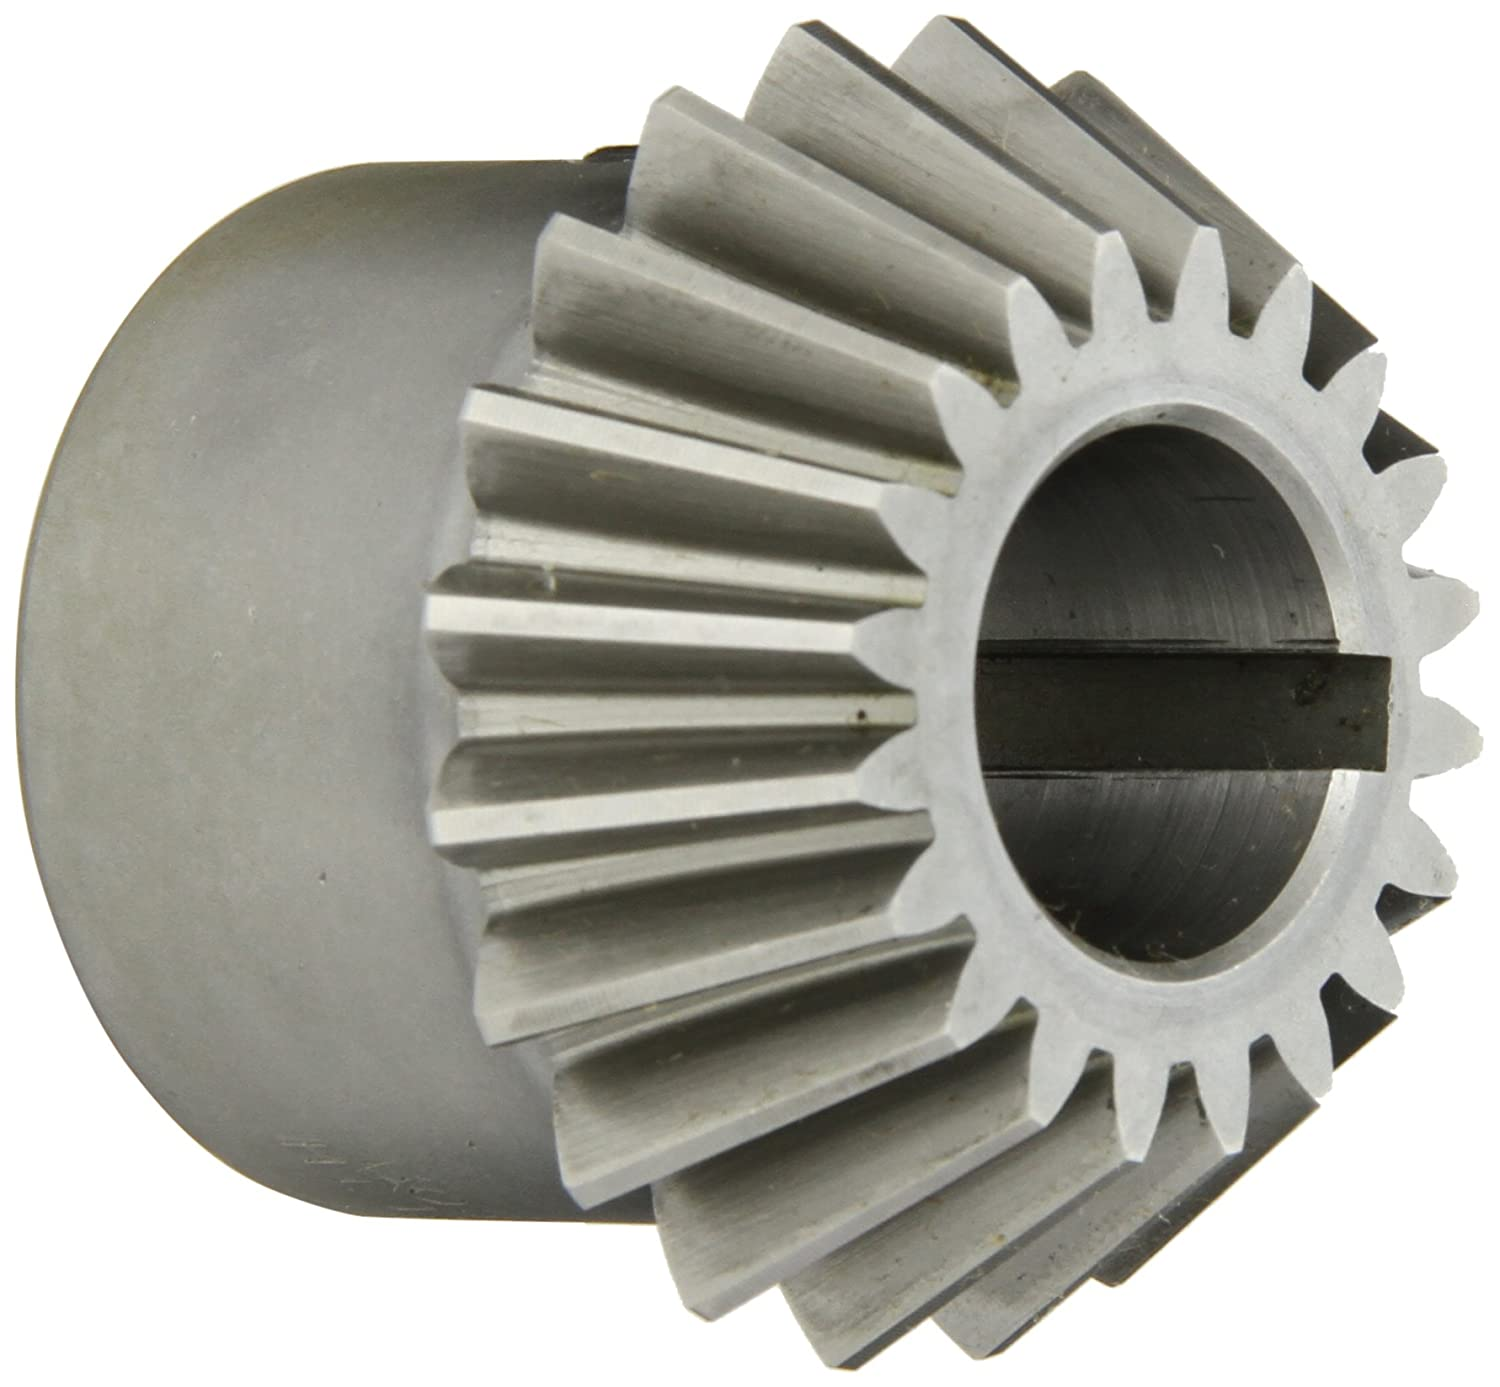 20 Teeth Straight Bevel Steel with Case-Hardened Teeth 10 Pitch 2:1 Ratio 0.875 Bore 20 Degree Pressure Angle Keyway Boston Gear HL155Y-P Bevel Pinion Gear